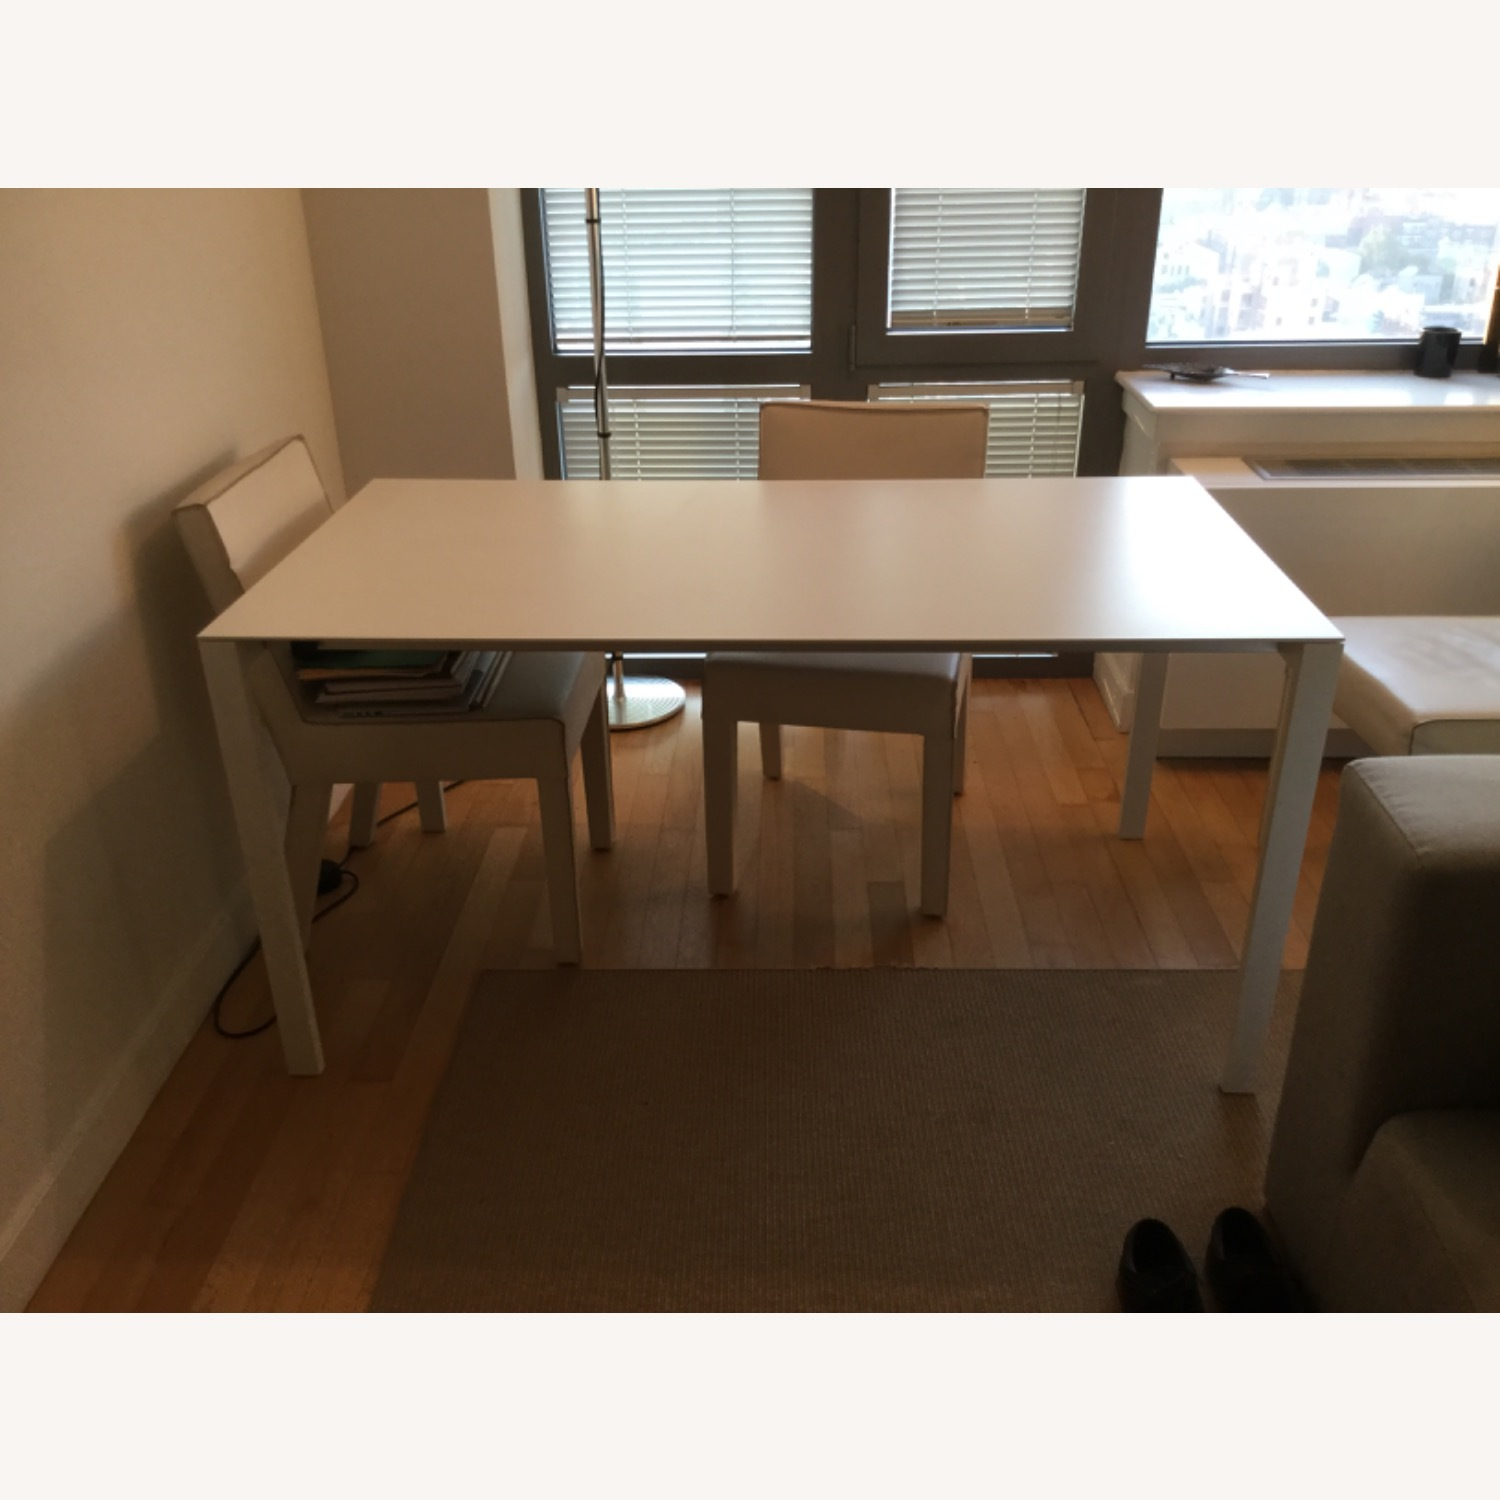 CB2 Expendable White Dinning table (Seat up to 8) - image-1